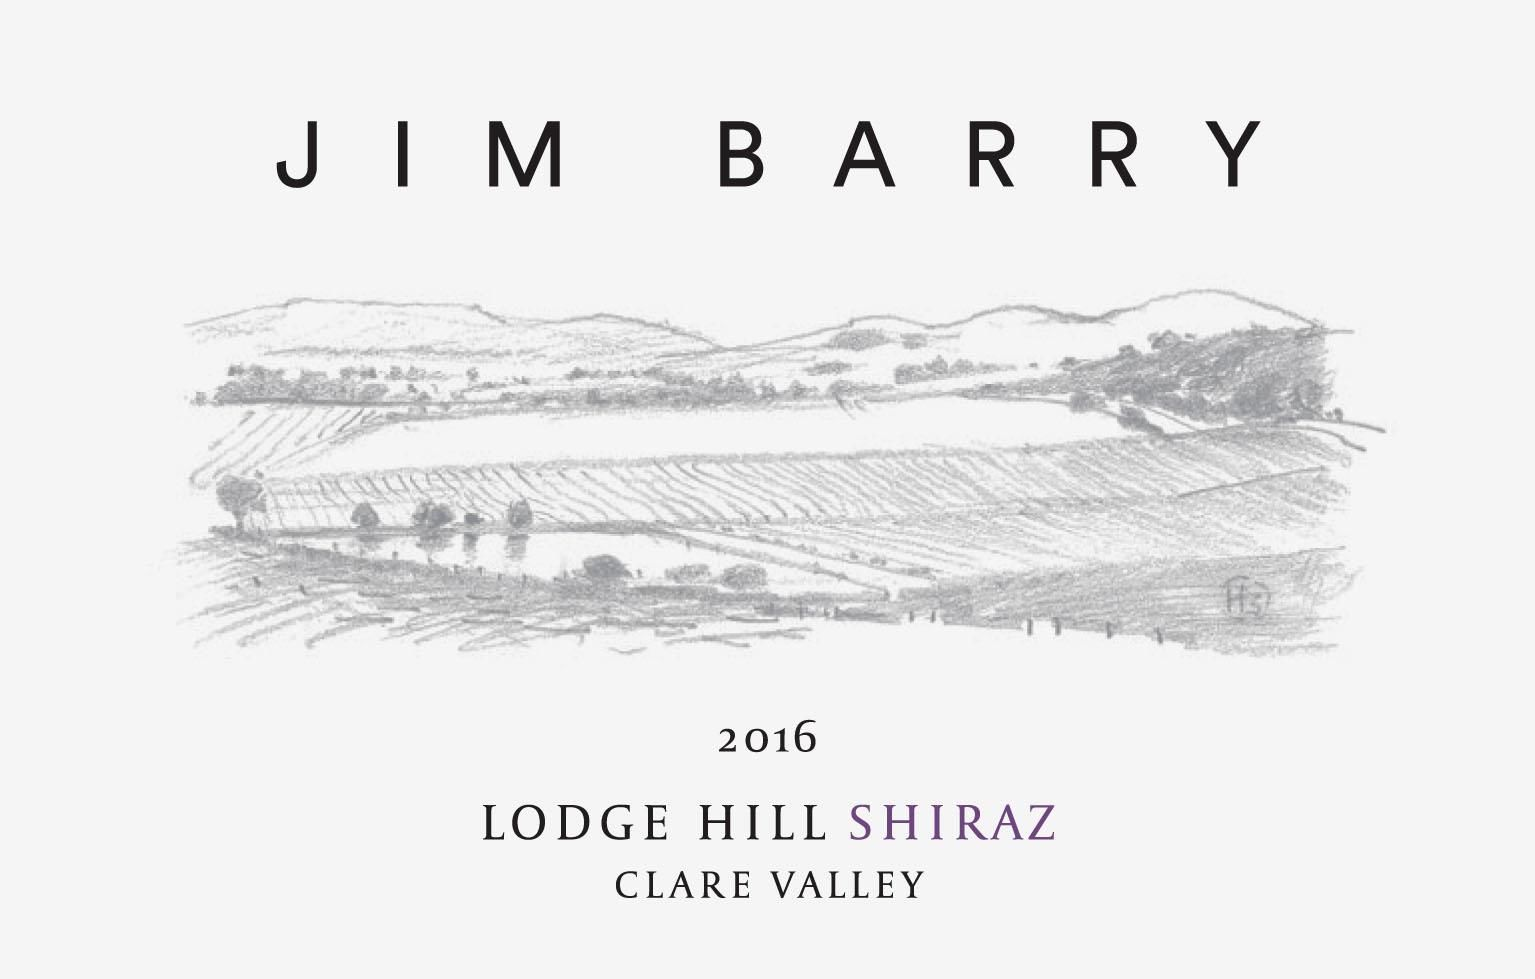 Jim Barry Lodge Hill Shiraz 2016  Front Label